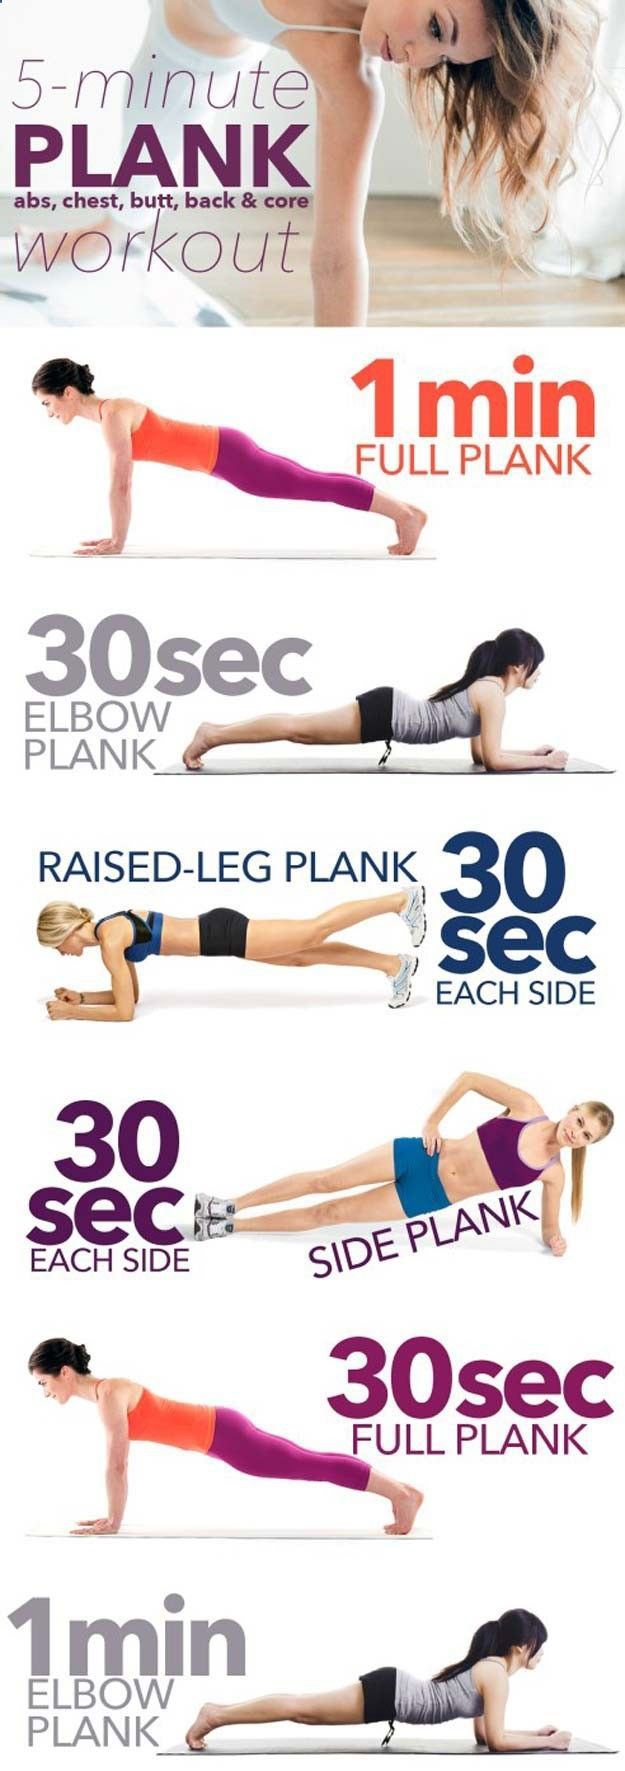 "Five Minute Workouts - 5-minute ""Almost-No-Work"" Plank Workout- Get a Great Full Body - thegoddess.com/five-minute-workouts psoas strengthening watches #HipFlexorsStrengthening"